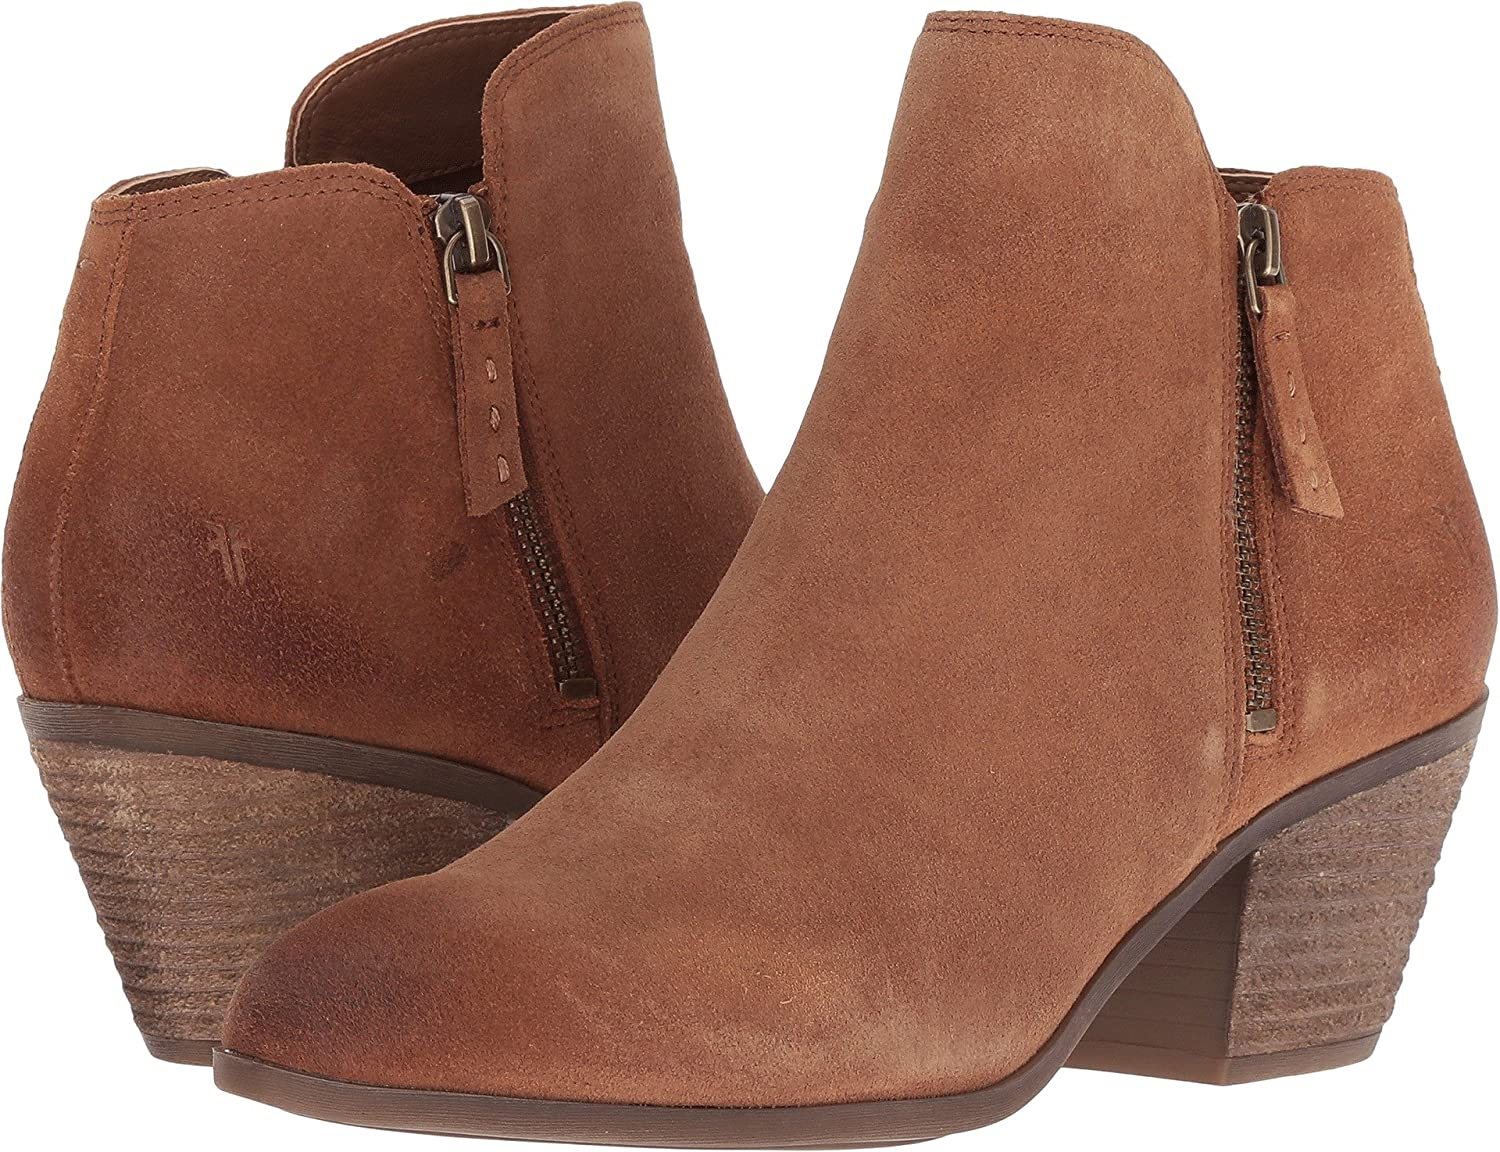 435b6b24391c Amazon.com  FRYE Womens Judy Zip Bootie  Shoes